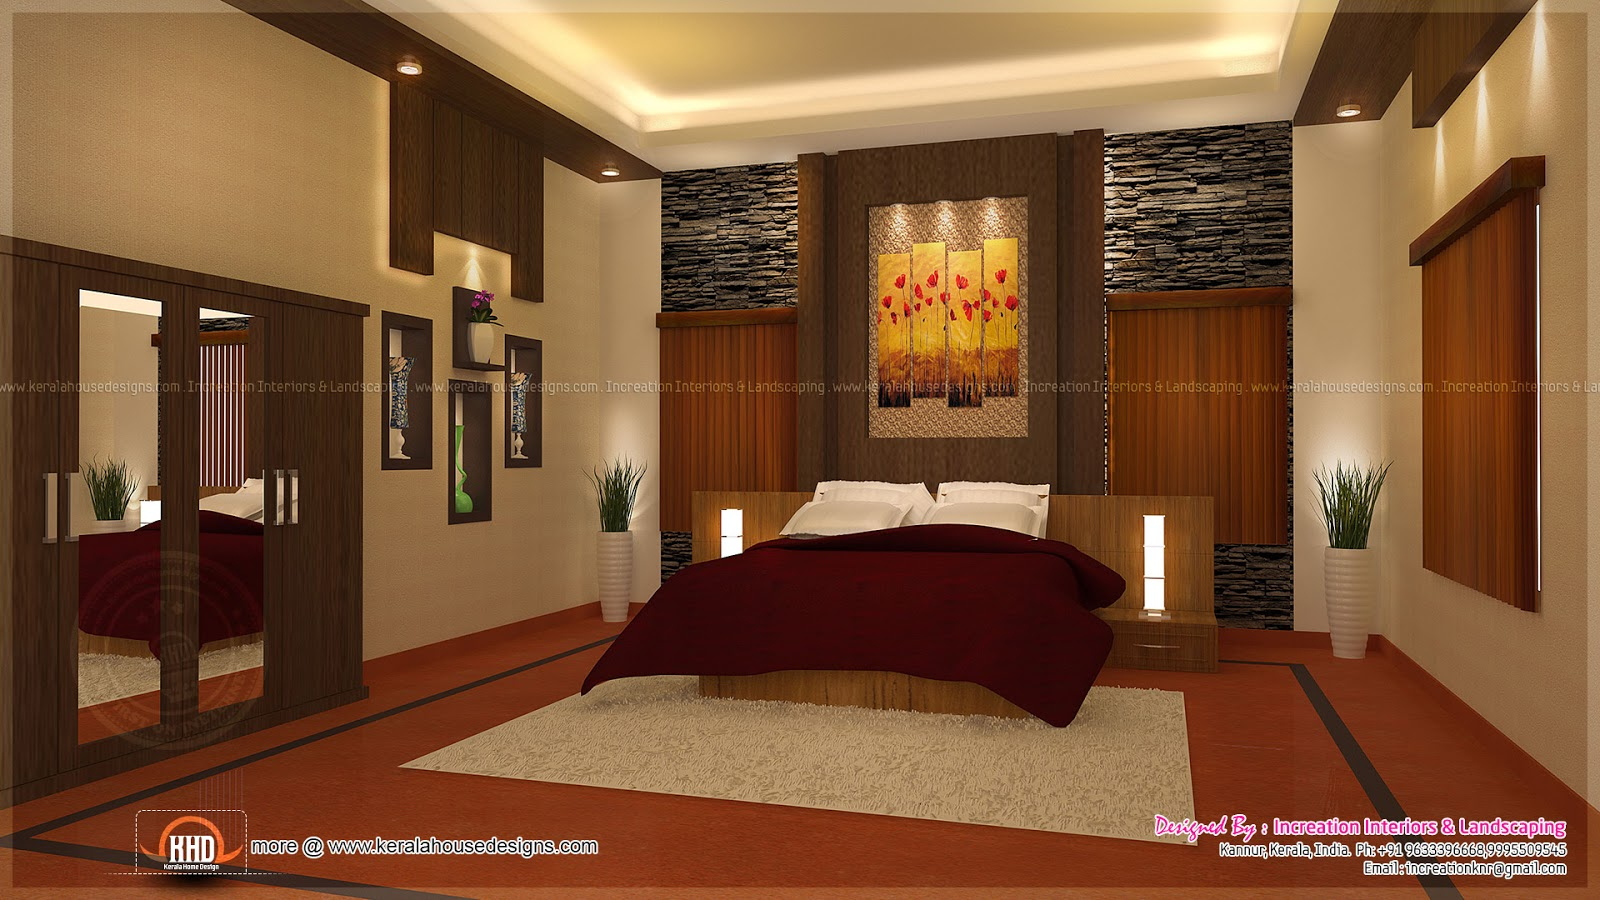 House interior ideas in 3d rendering kerala home design for House design inside